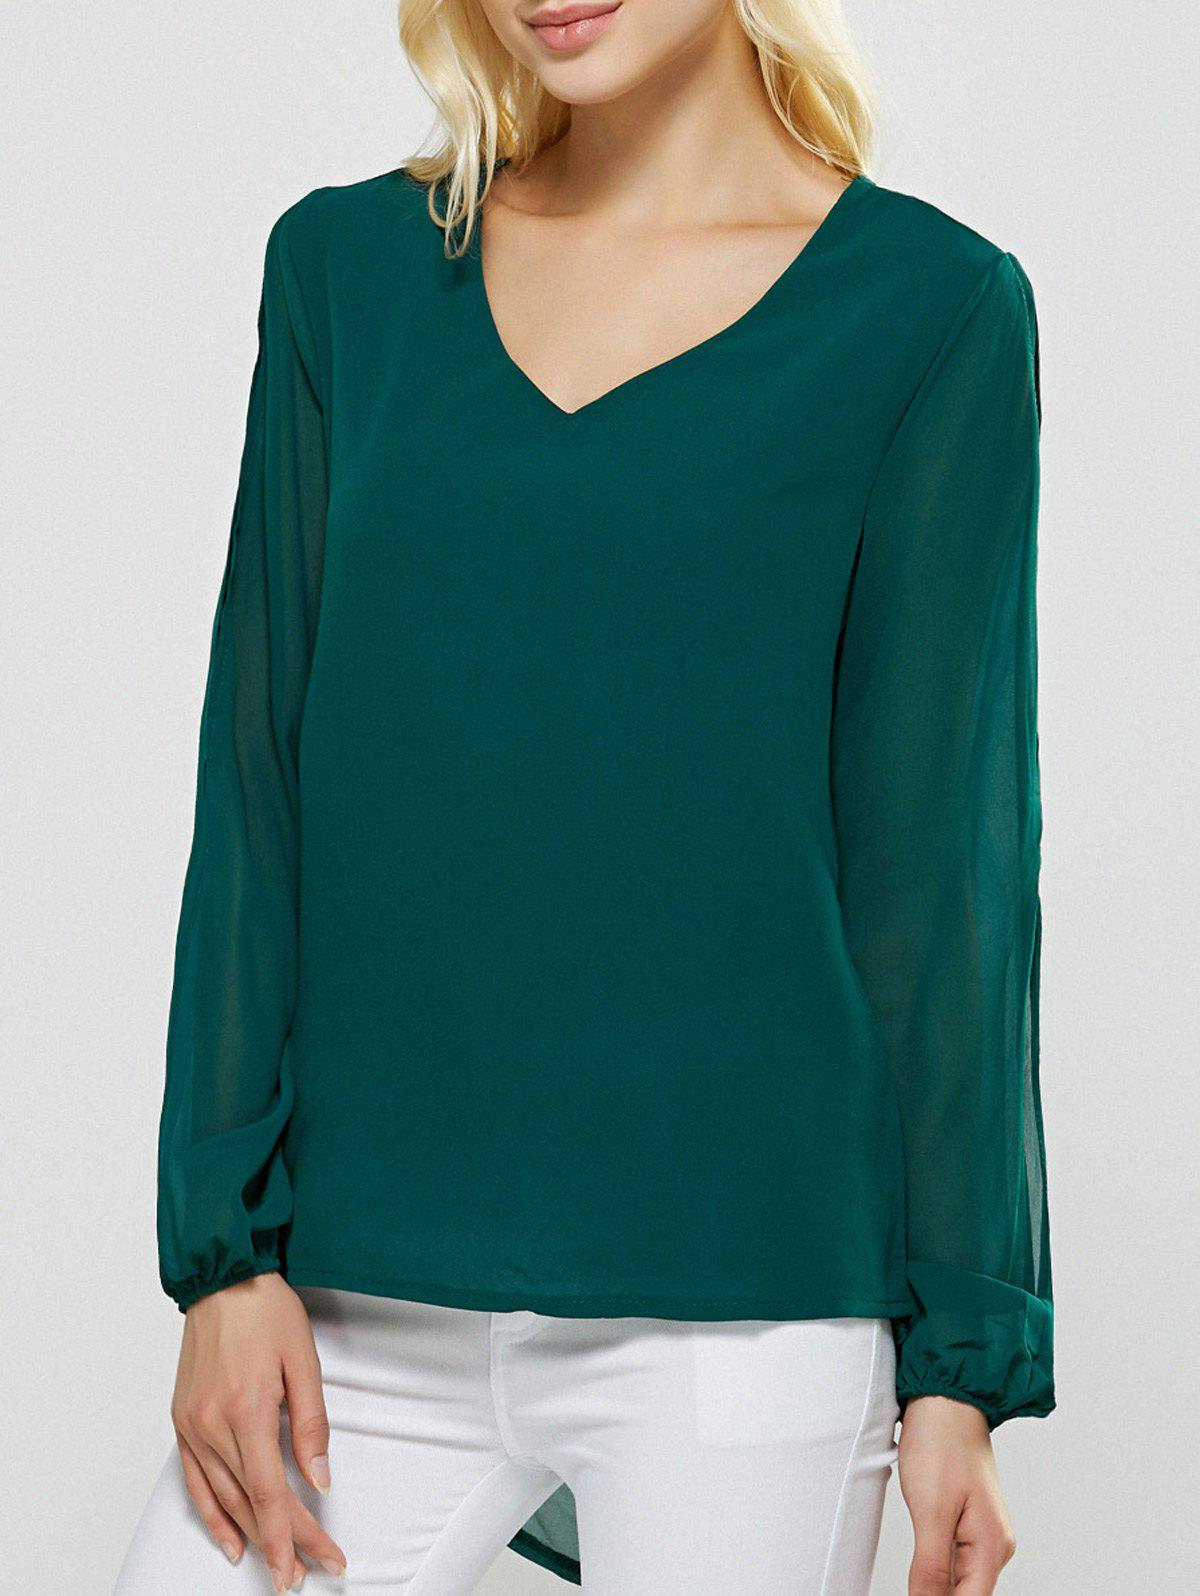 V-Neck Slit Sleeve High Low Blouse - GREEN XL